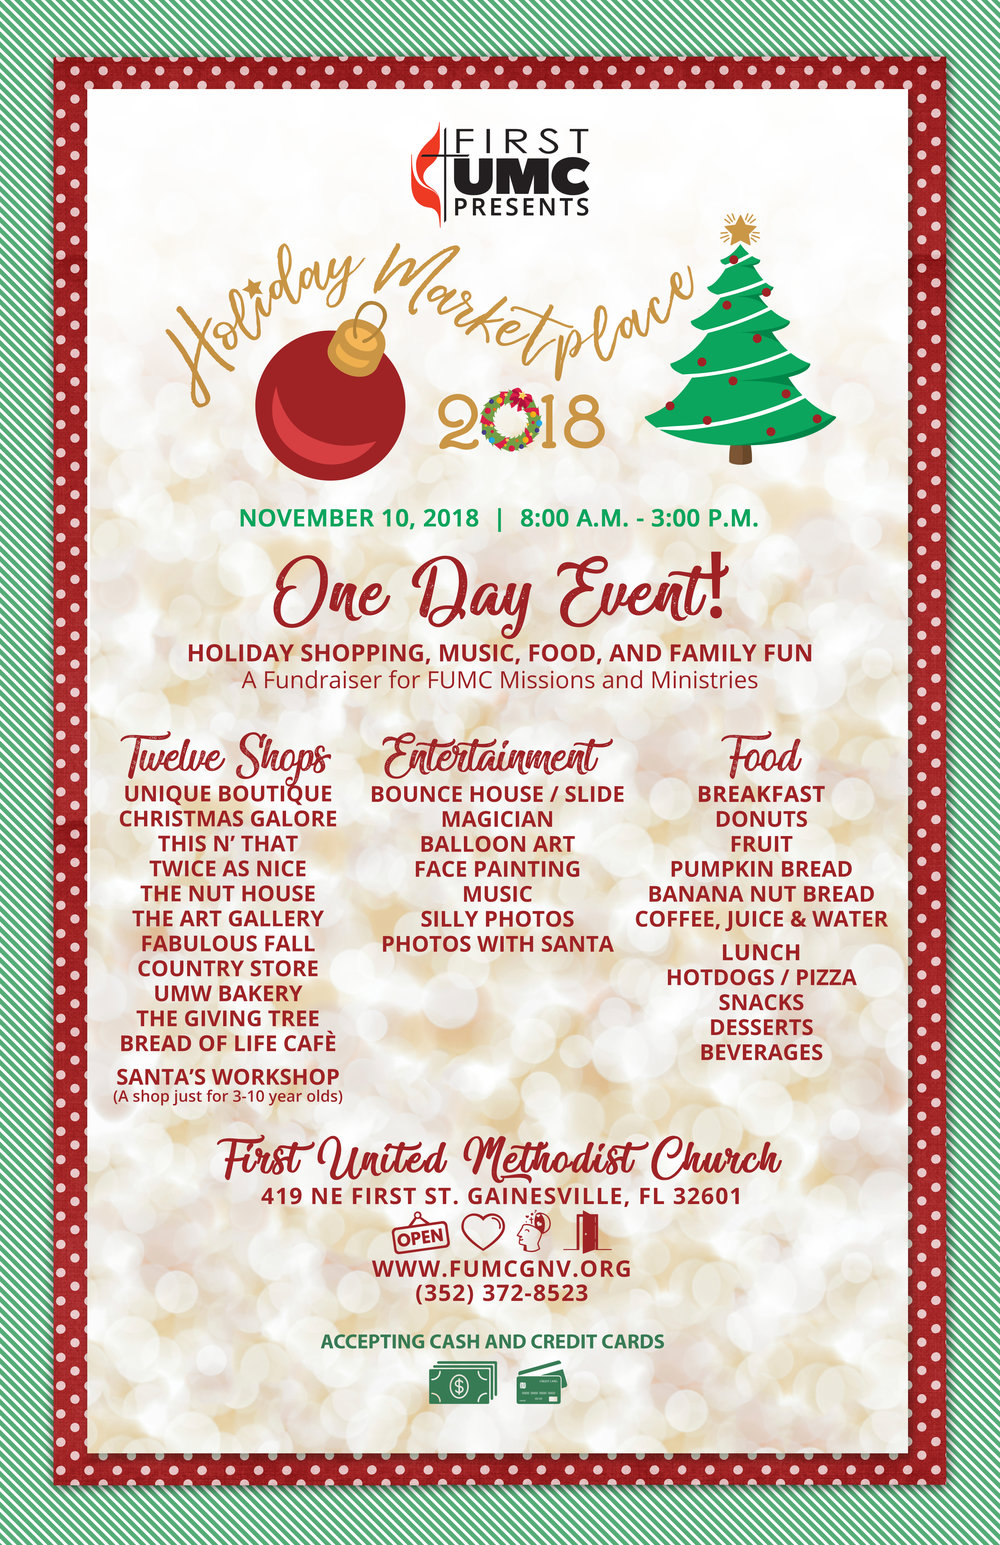 FINAL - FUMC Holiday Market Place Cover 11x17- all Flyer 2018.jpg